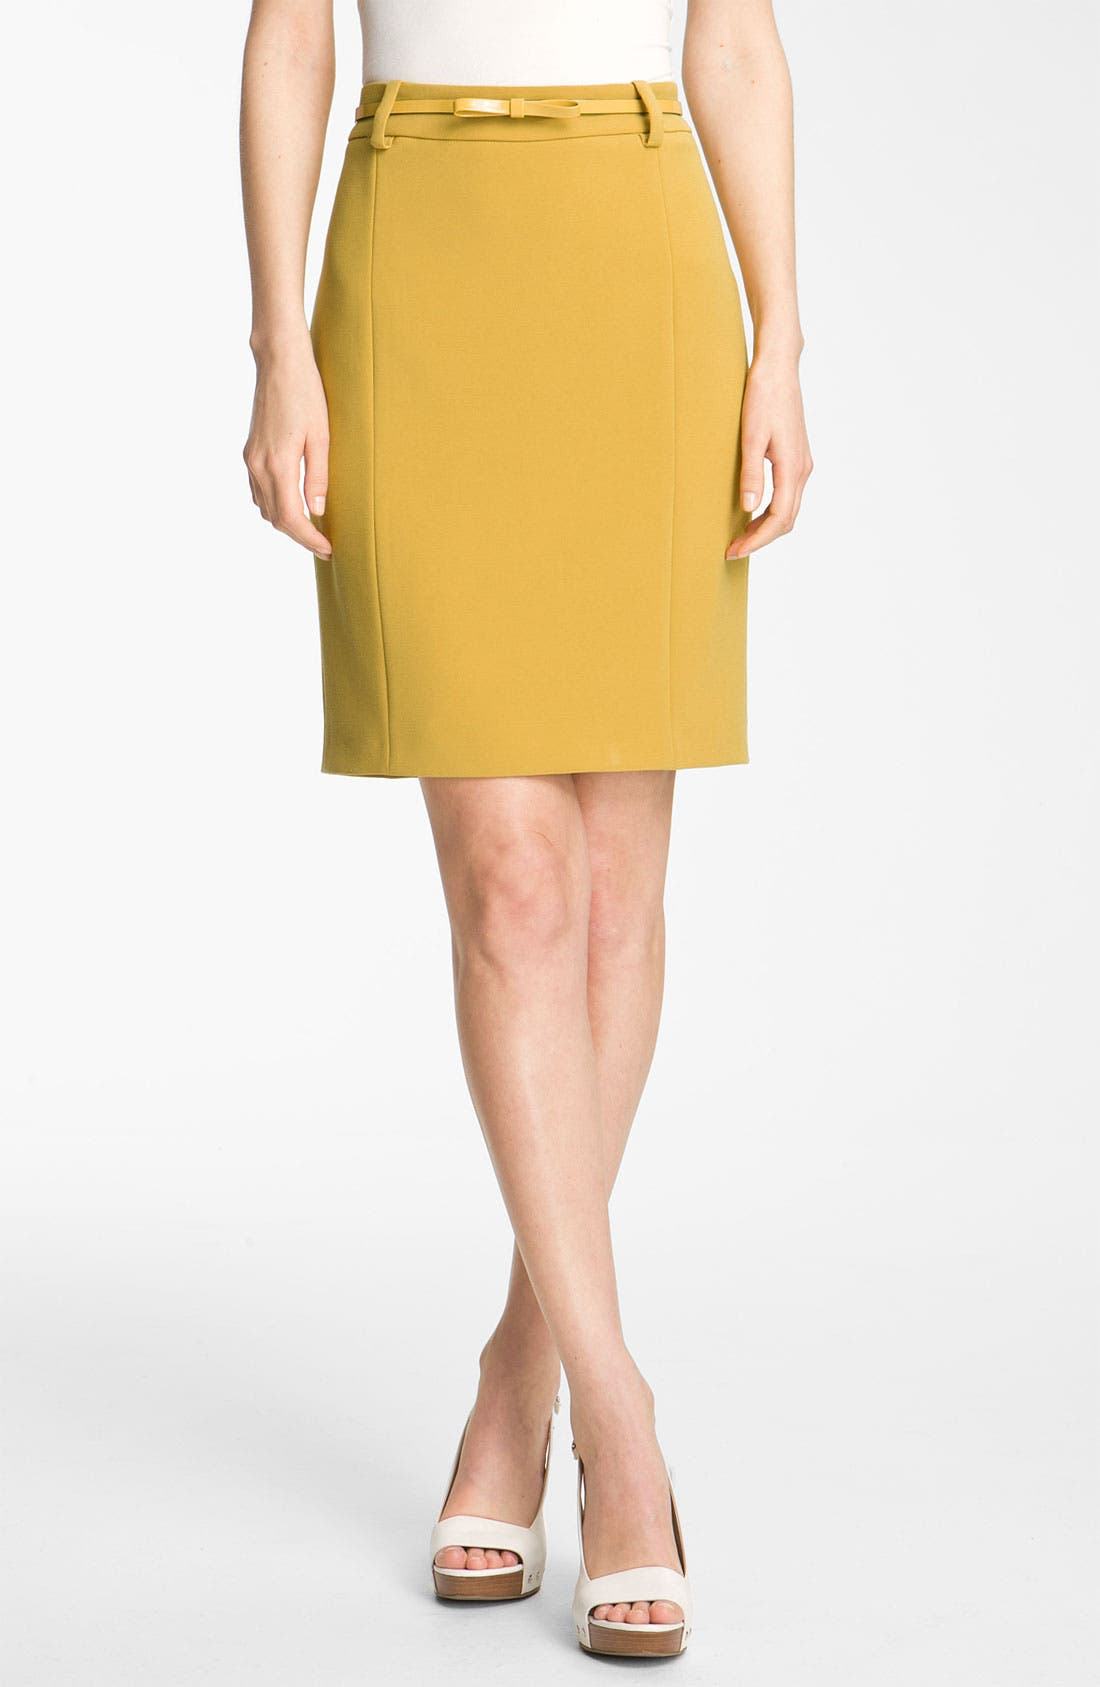 Alternate Image 1 Selected - Weekend Max Mara 'Medusa' Skirt